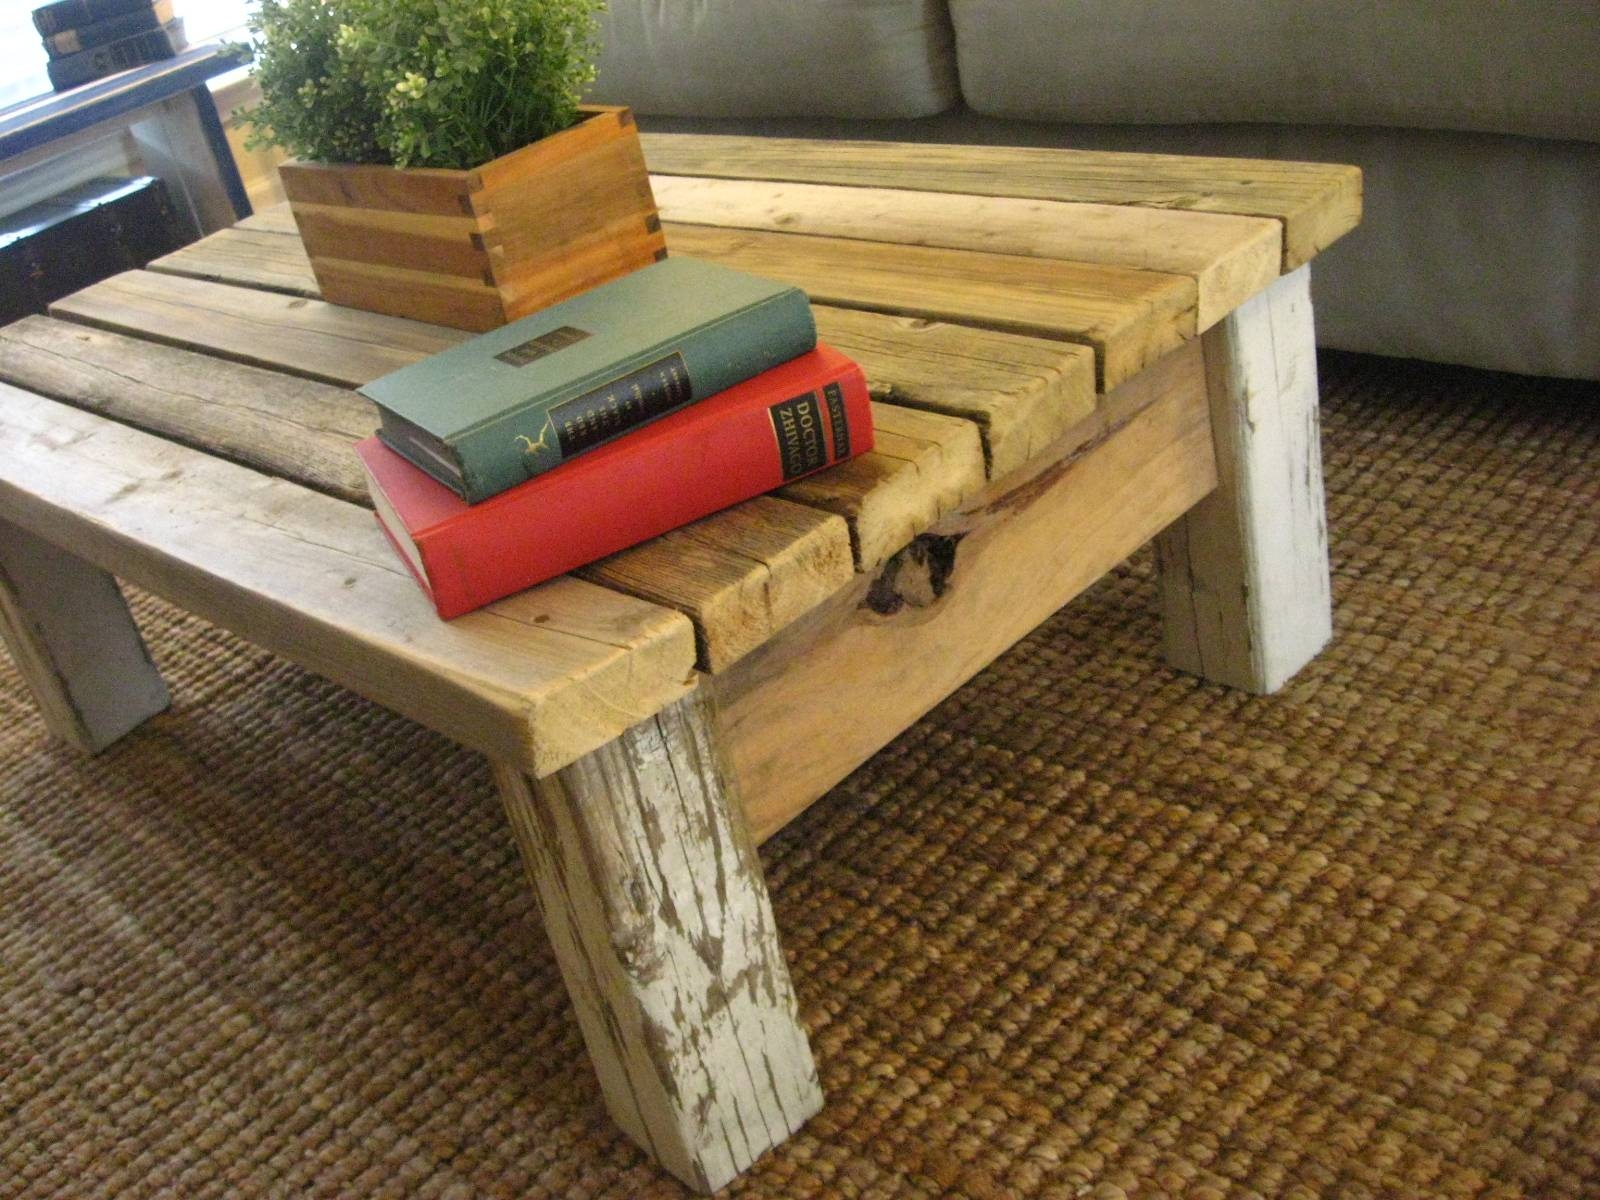 30 ideas of rustic wood diy coffee tables furniture rustic coffee table plans tryde coffee table diy within rustic wood diy geotapseo Image collections